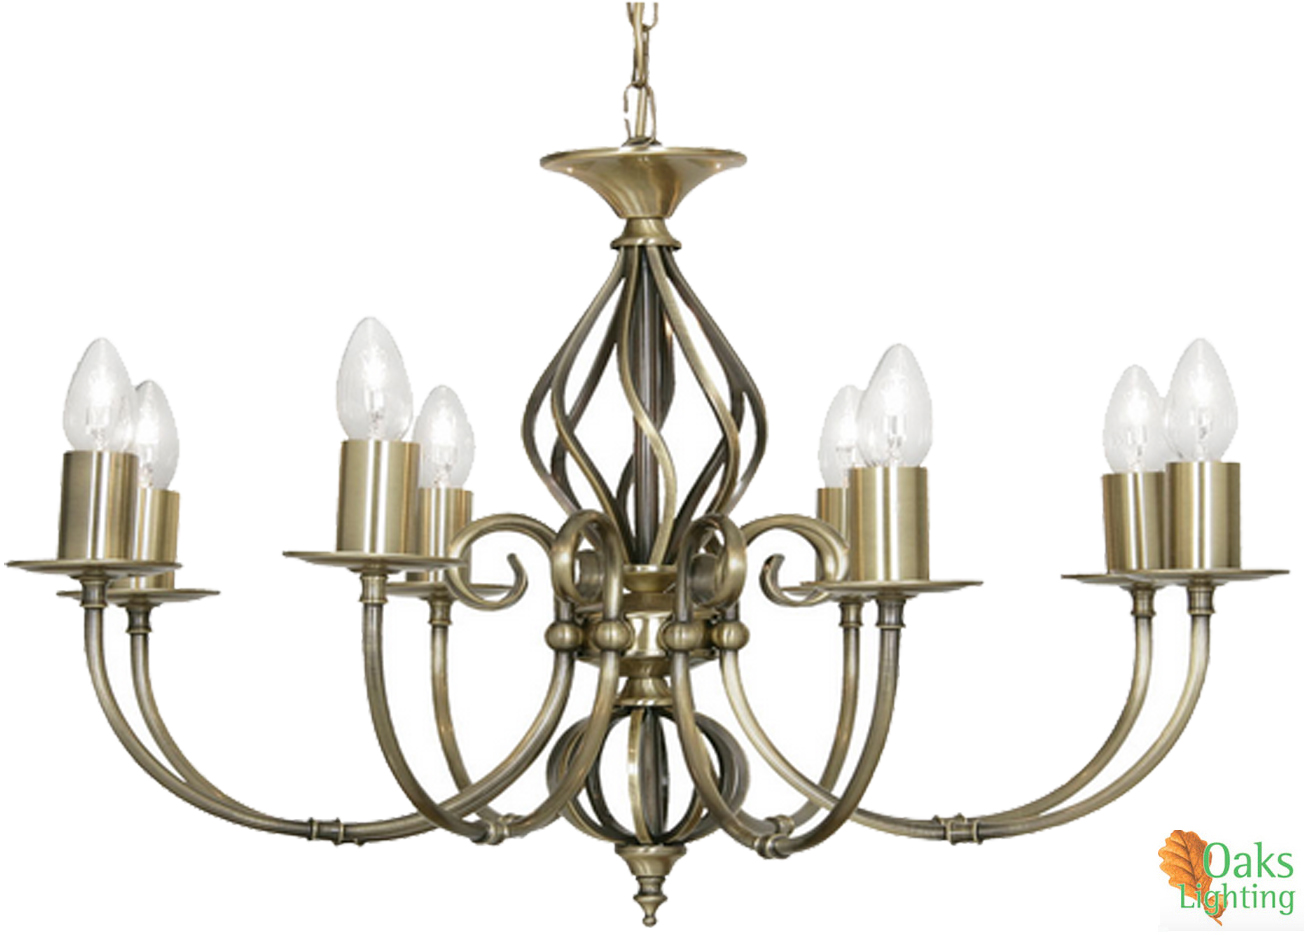 Oaks lighting 39tuscany39 8 light ceiling light antique for Tuscany floor lamp antique brass